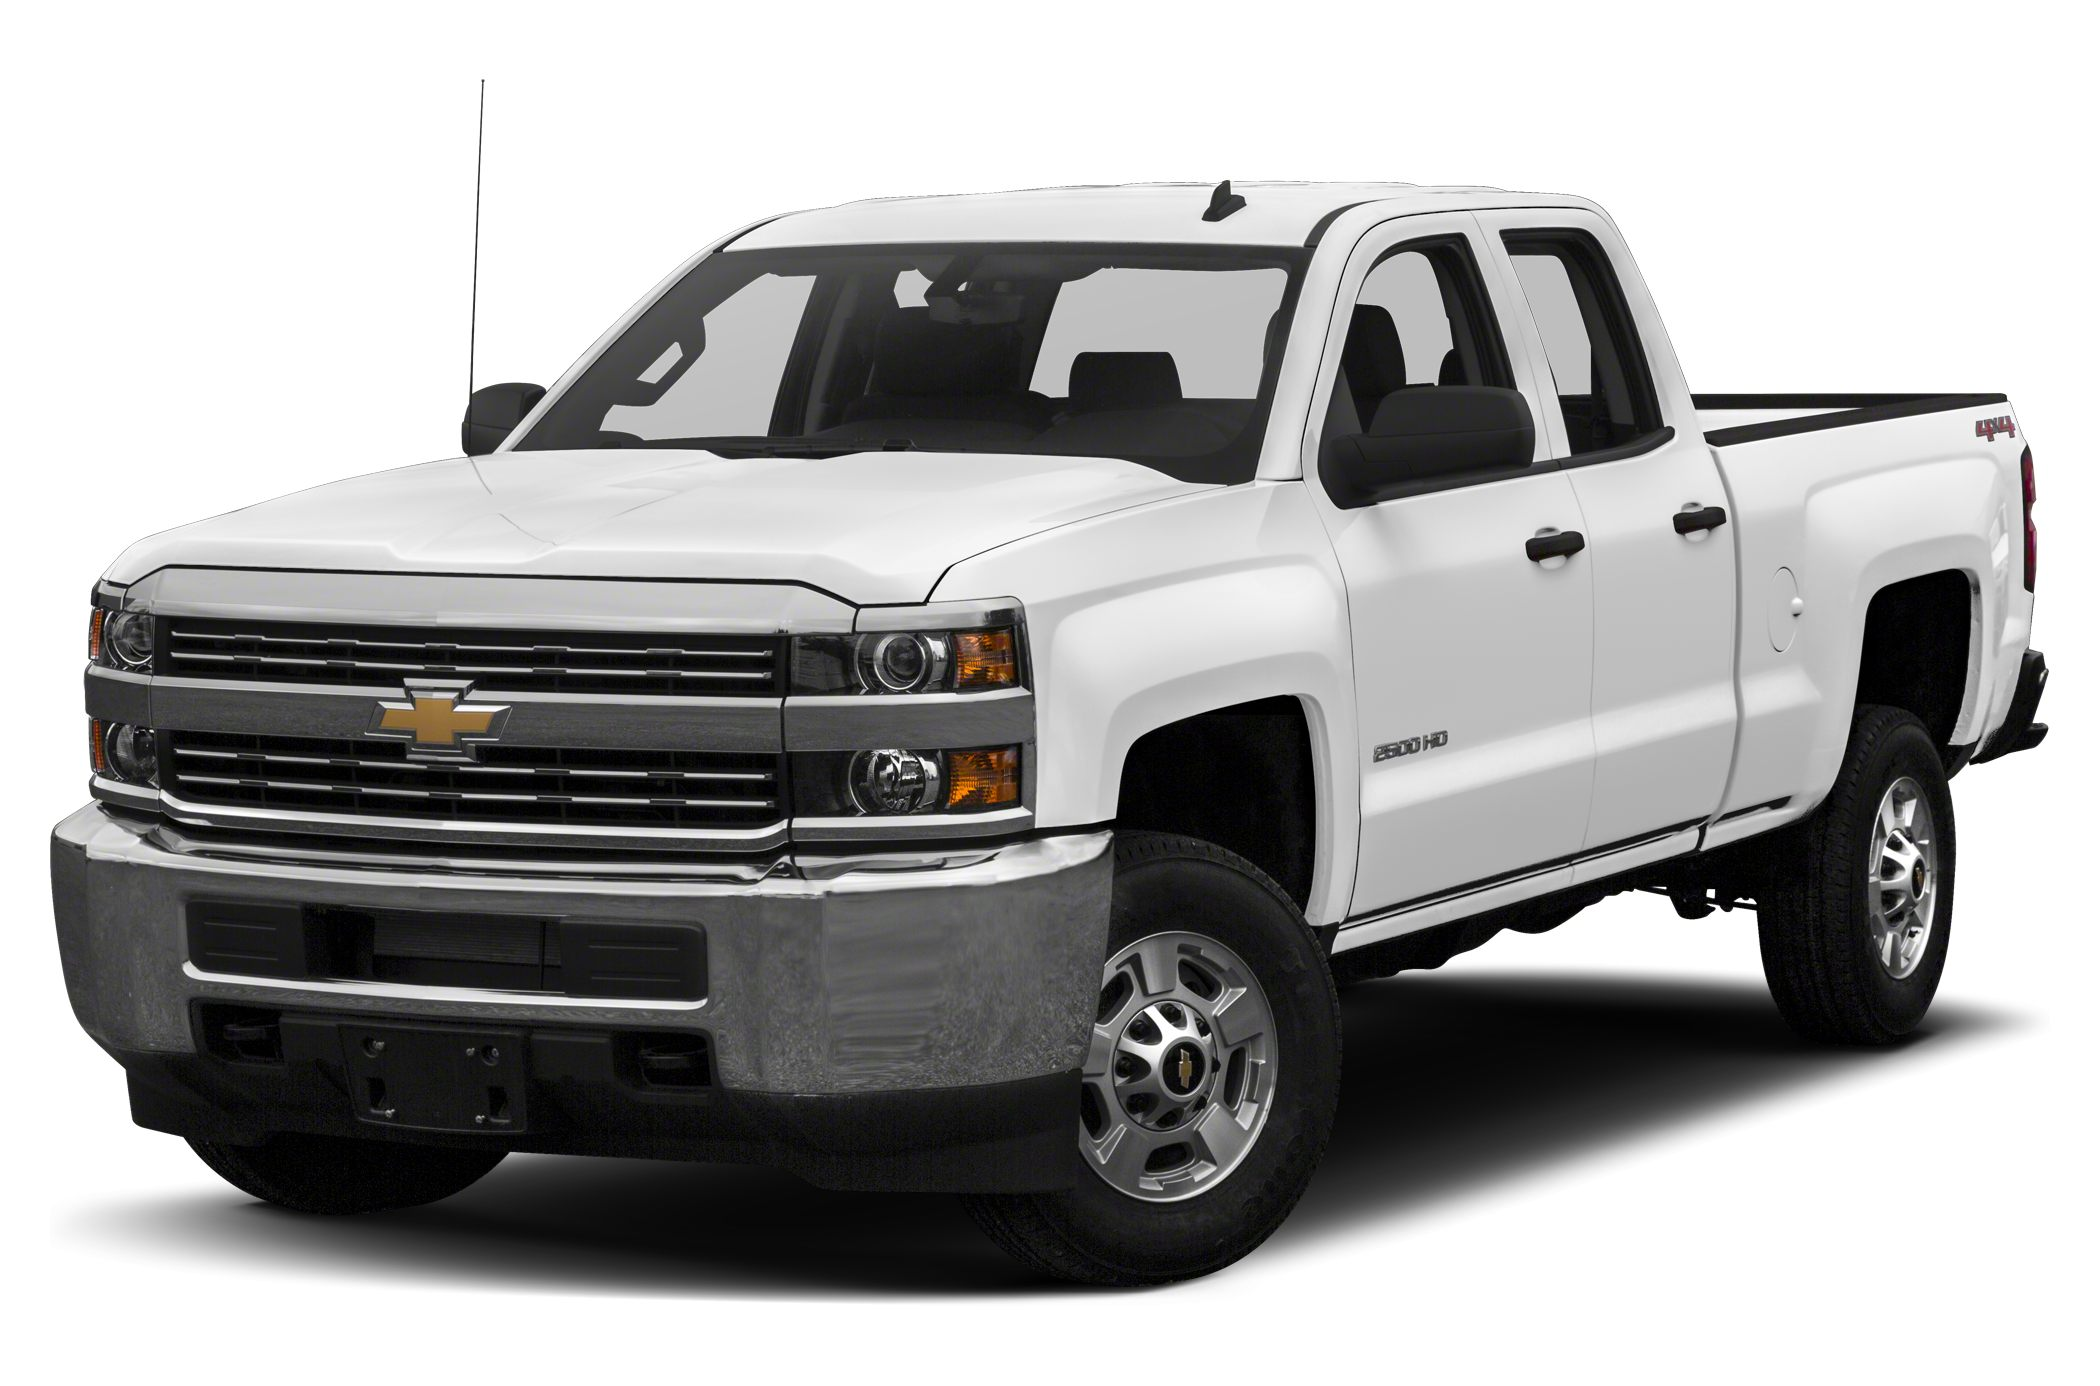 2015 Chevrolet Silverado 2500 LTZ Crew Cab Pickup for sale in West Plains for $61,240 with 0 miles.